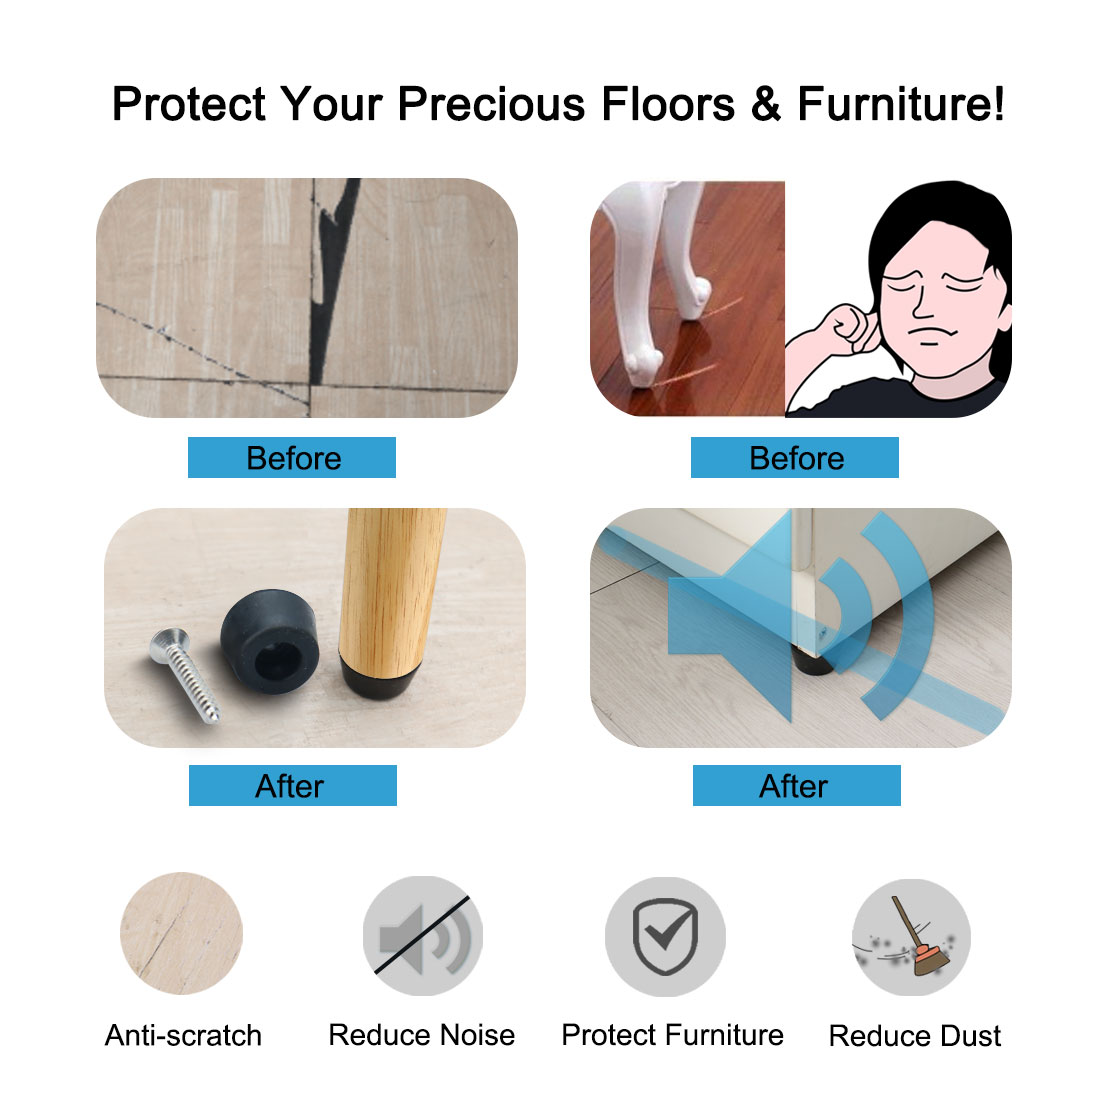 20pcs Rubber Feet Bumper Furniture Floor Protector Pad with Screws, D20x11xH8mm - image 3 of 7